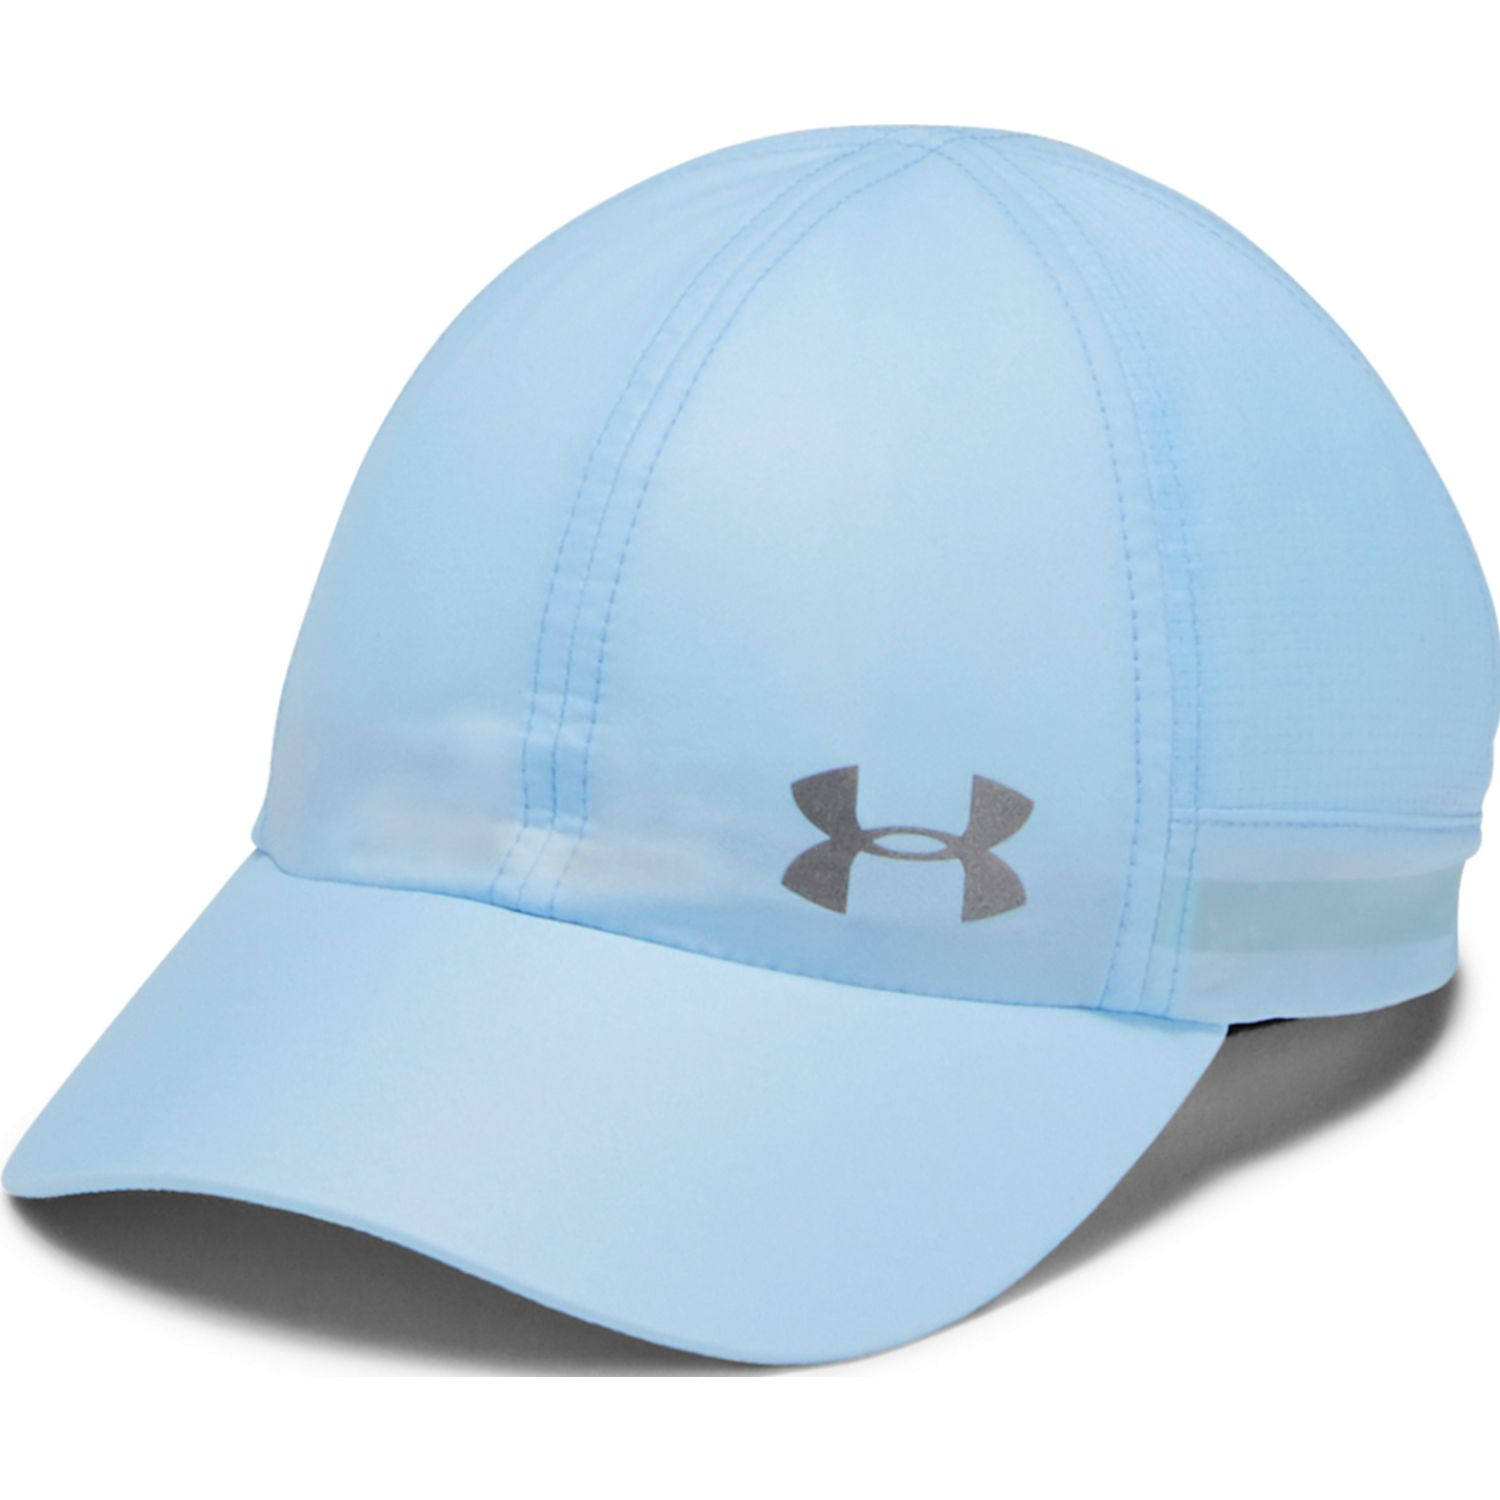 Under Armour ua fly by cap Celeste Gorros de Baseball